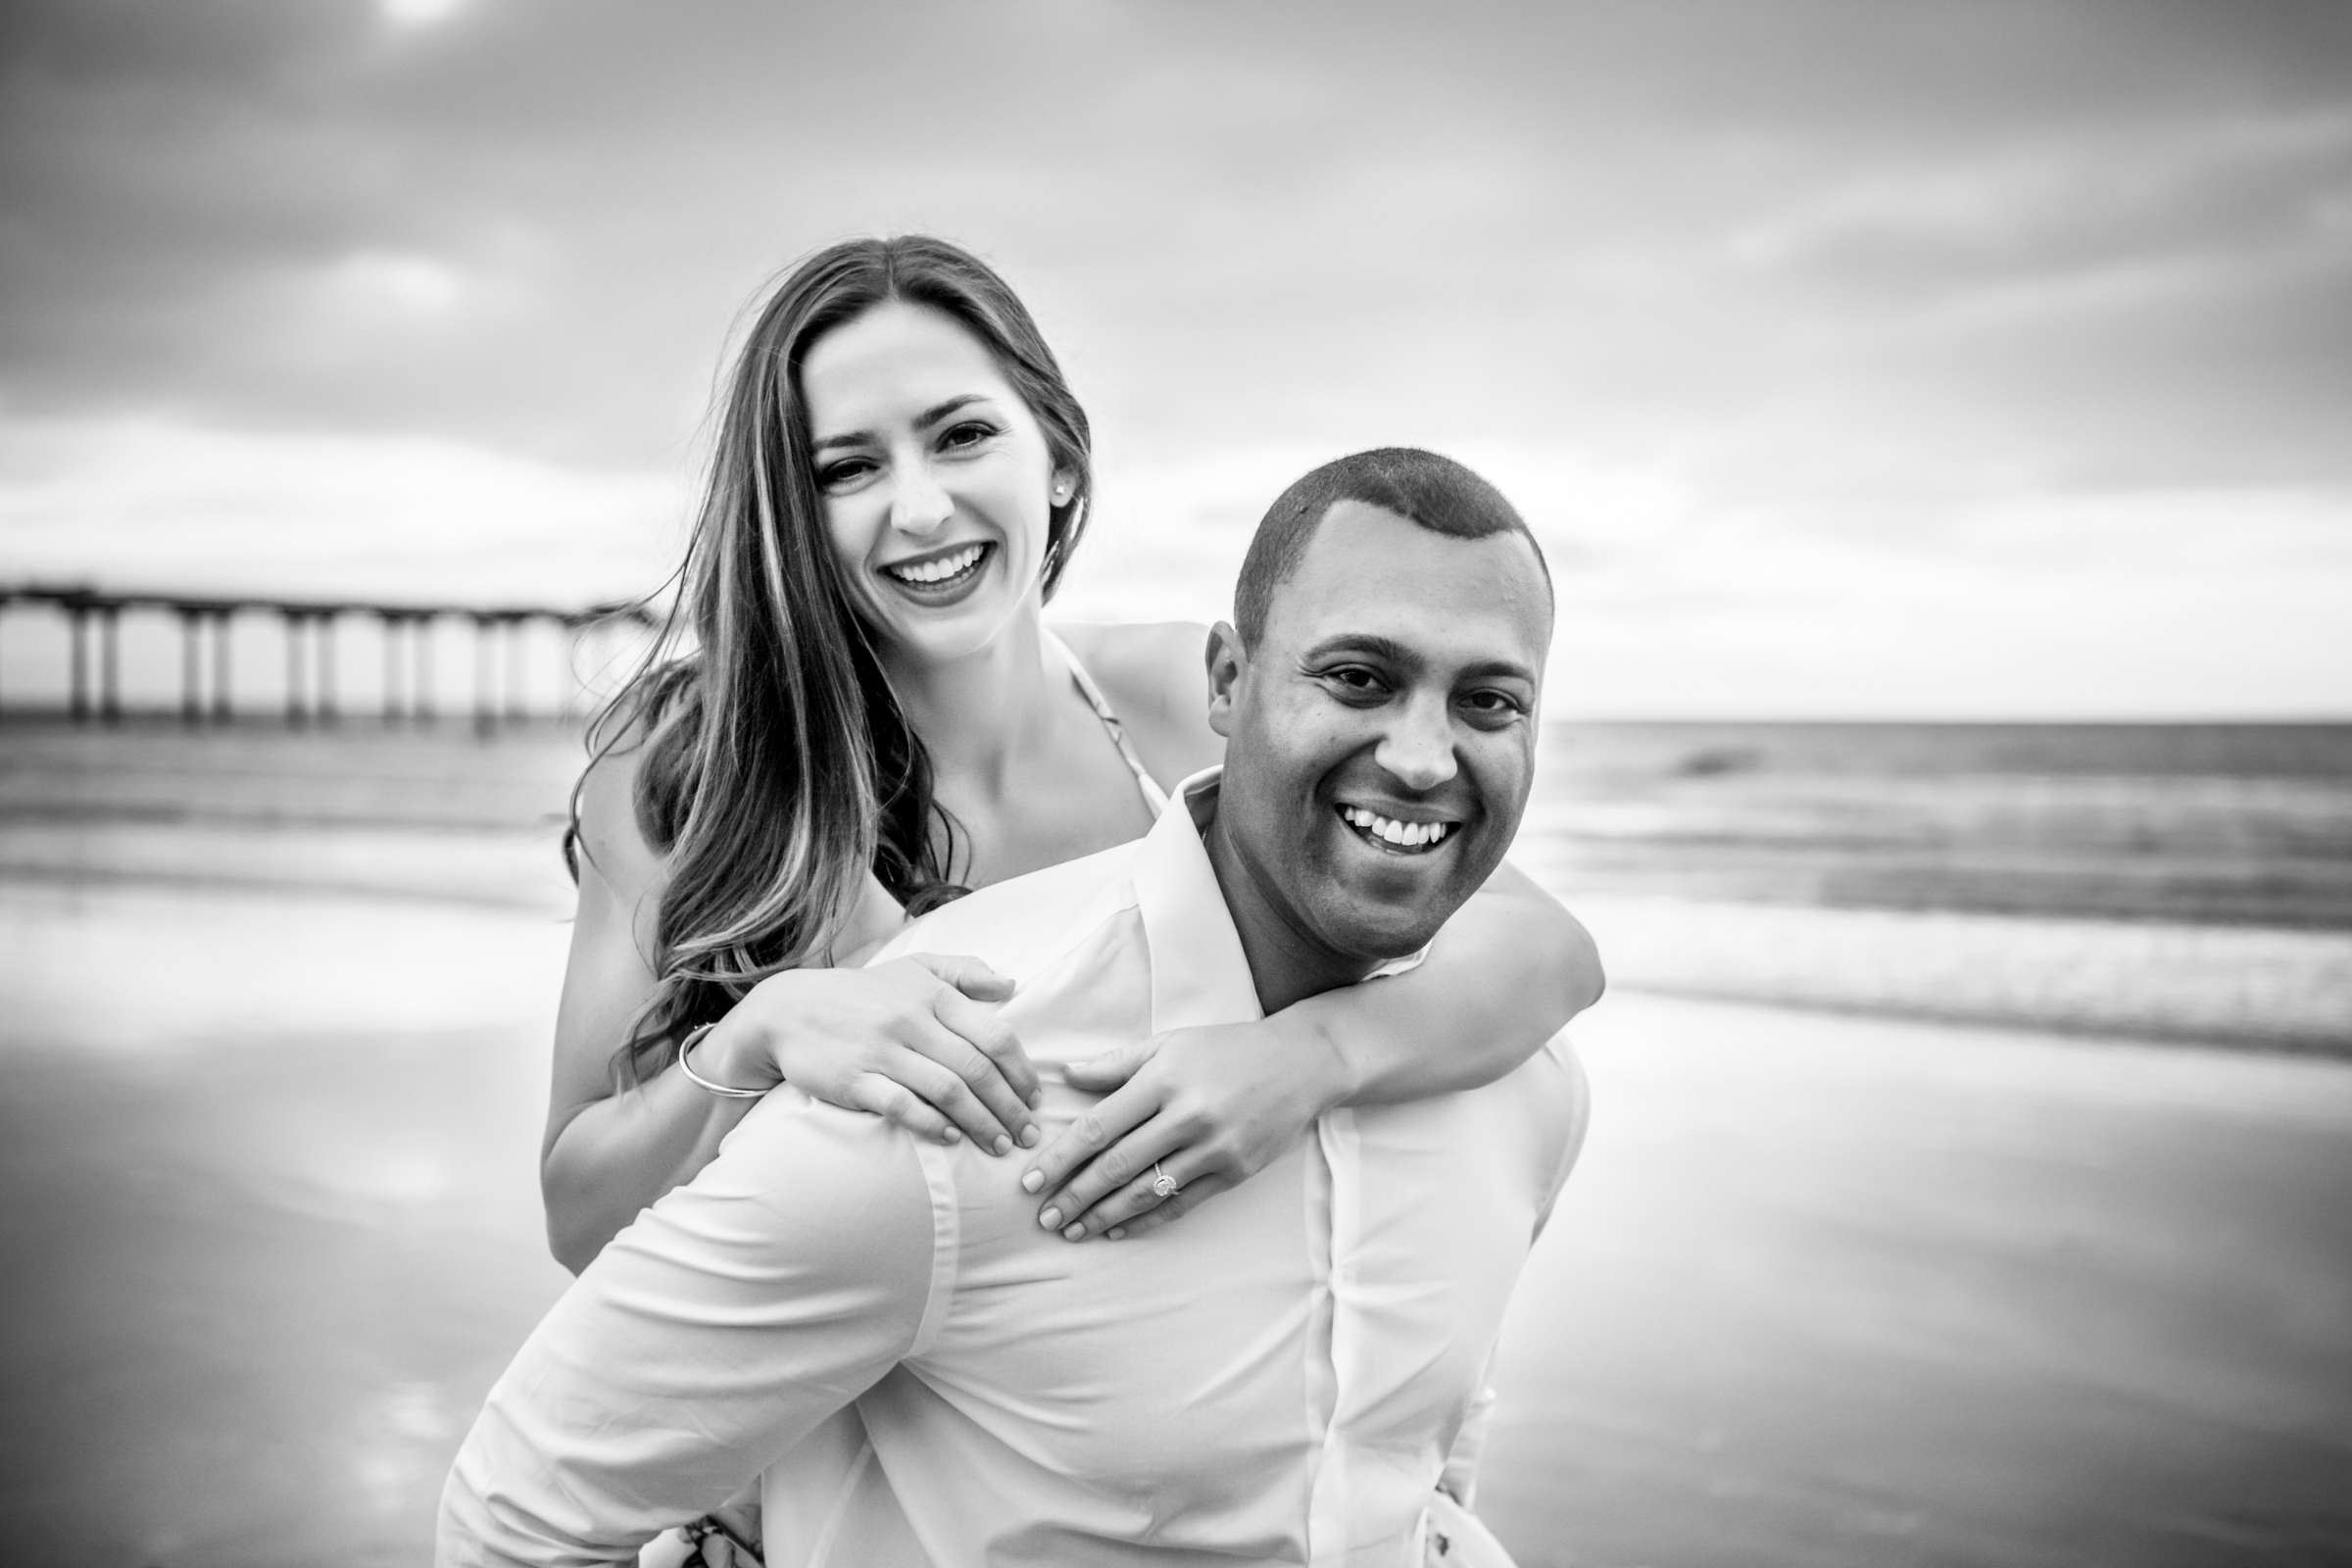 Engagement, Alexia and Kalin Engagement Photo #617317 by True Photography